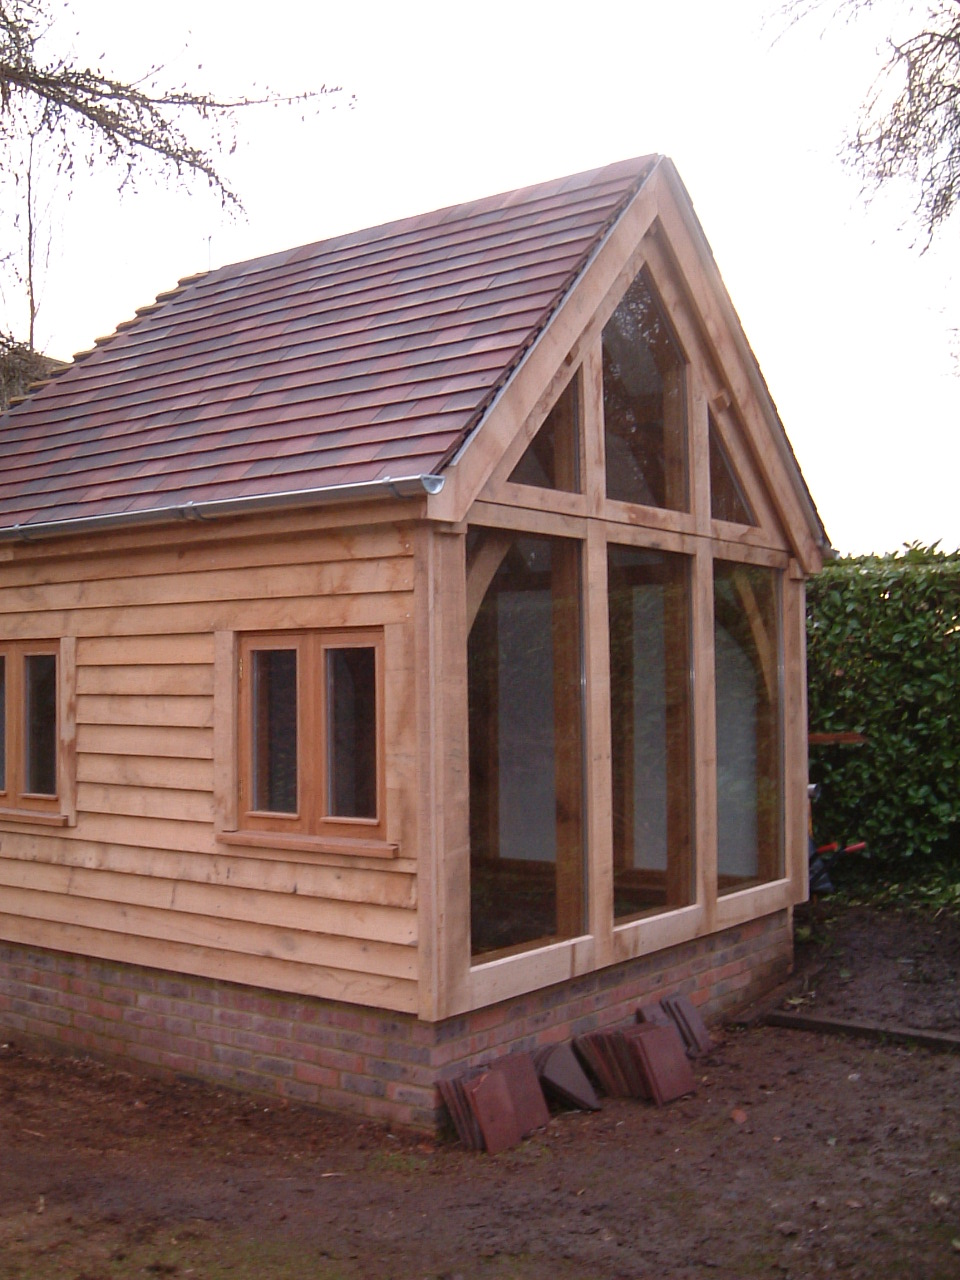 Create a More Sustainable, Creative Life With an Oak Studio